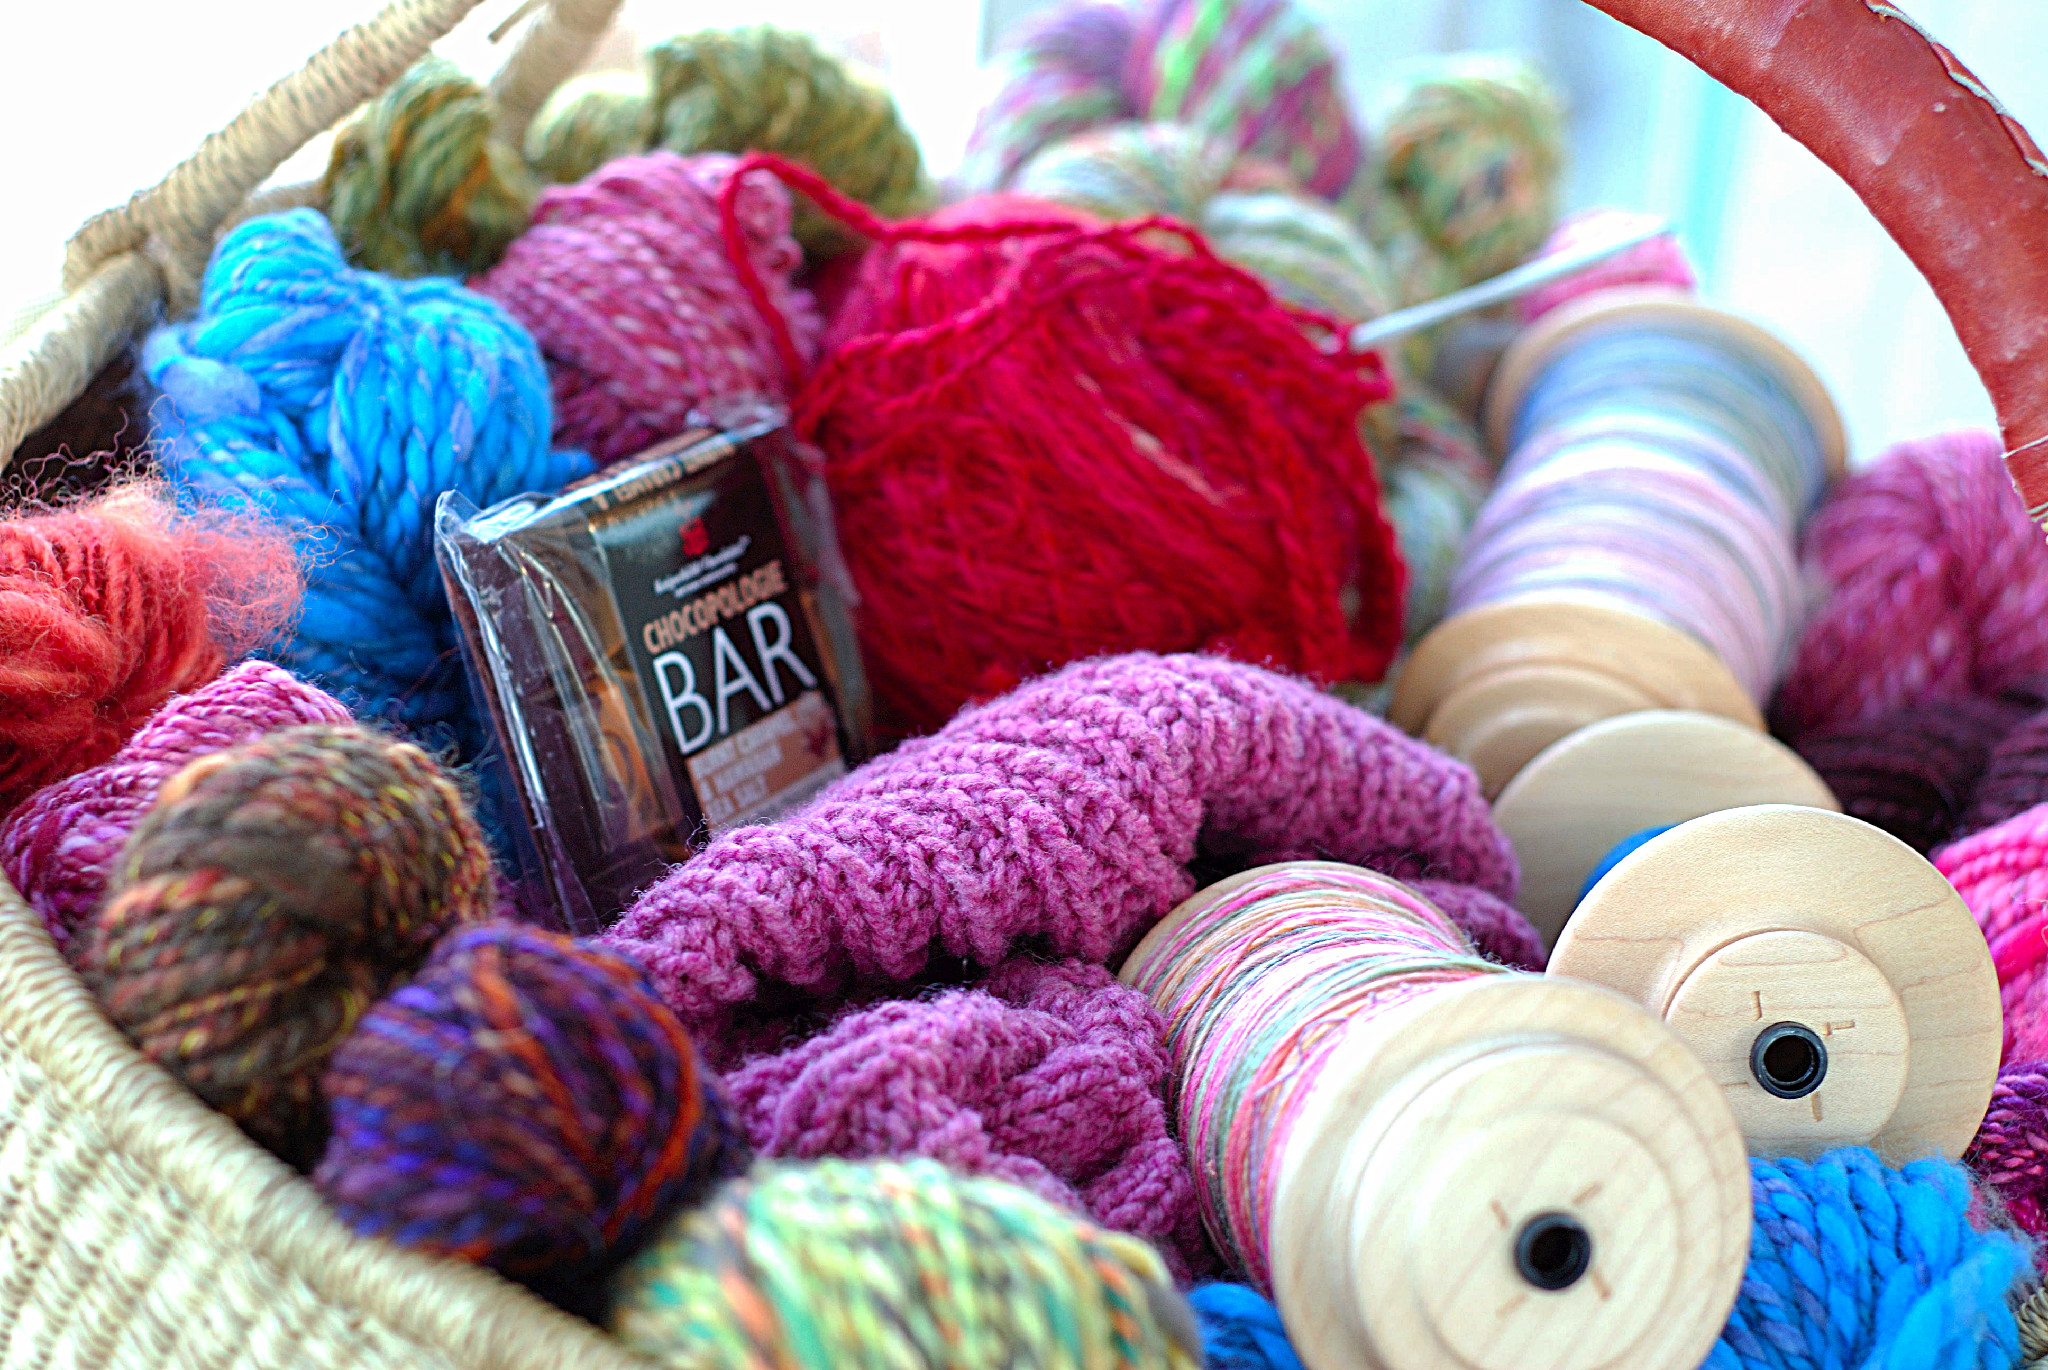 There is everything a knitter need in here - yarn & chocolate!